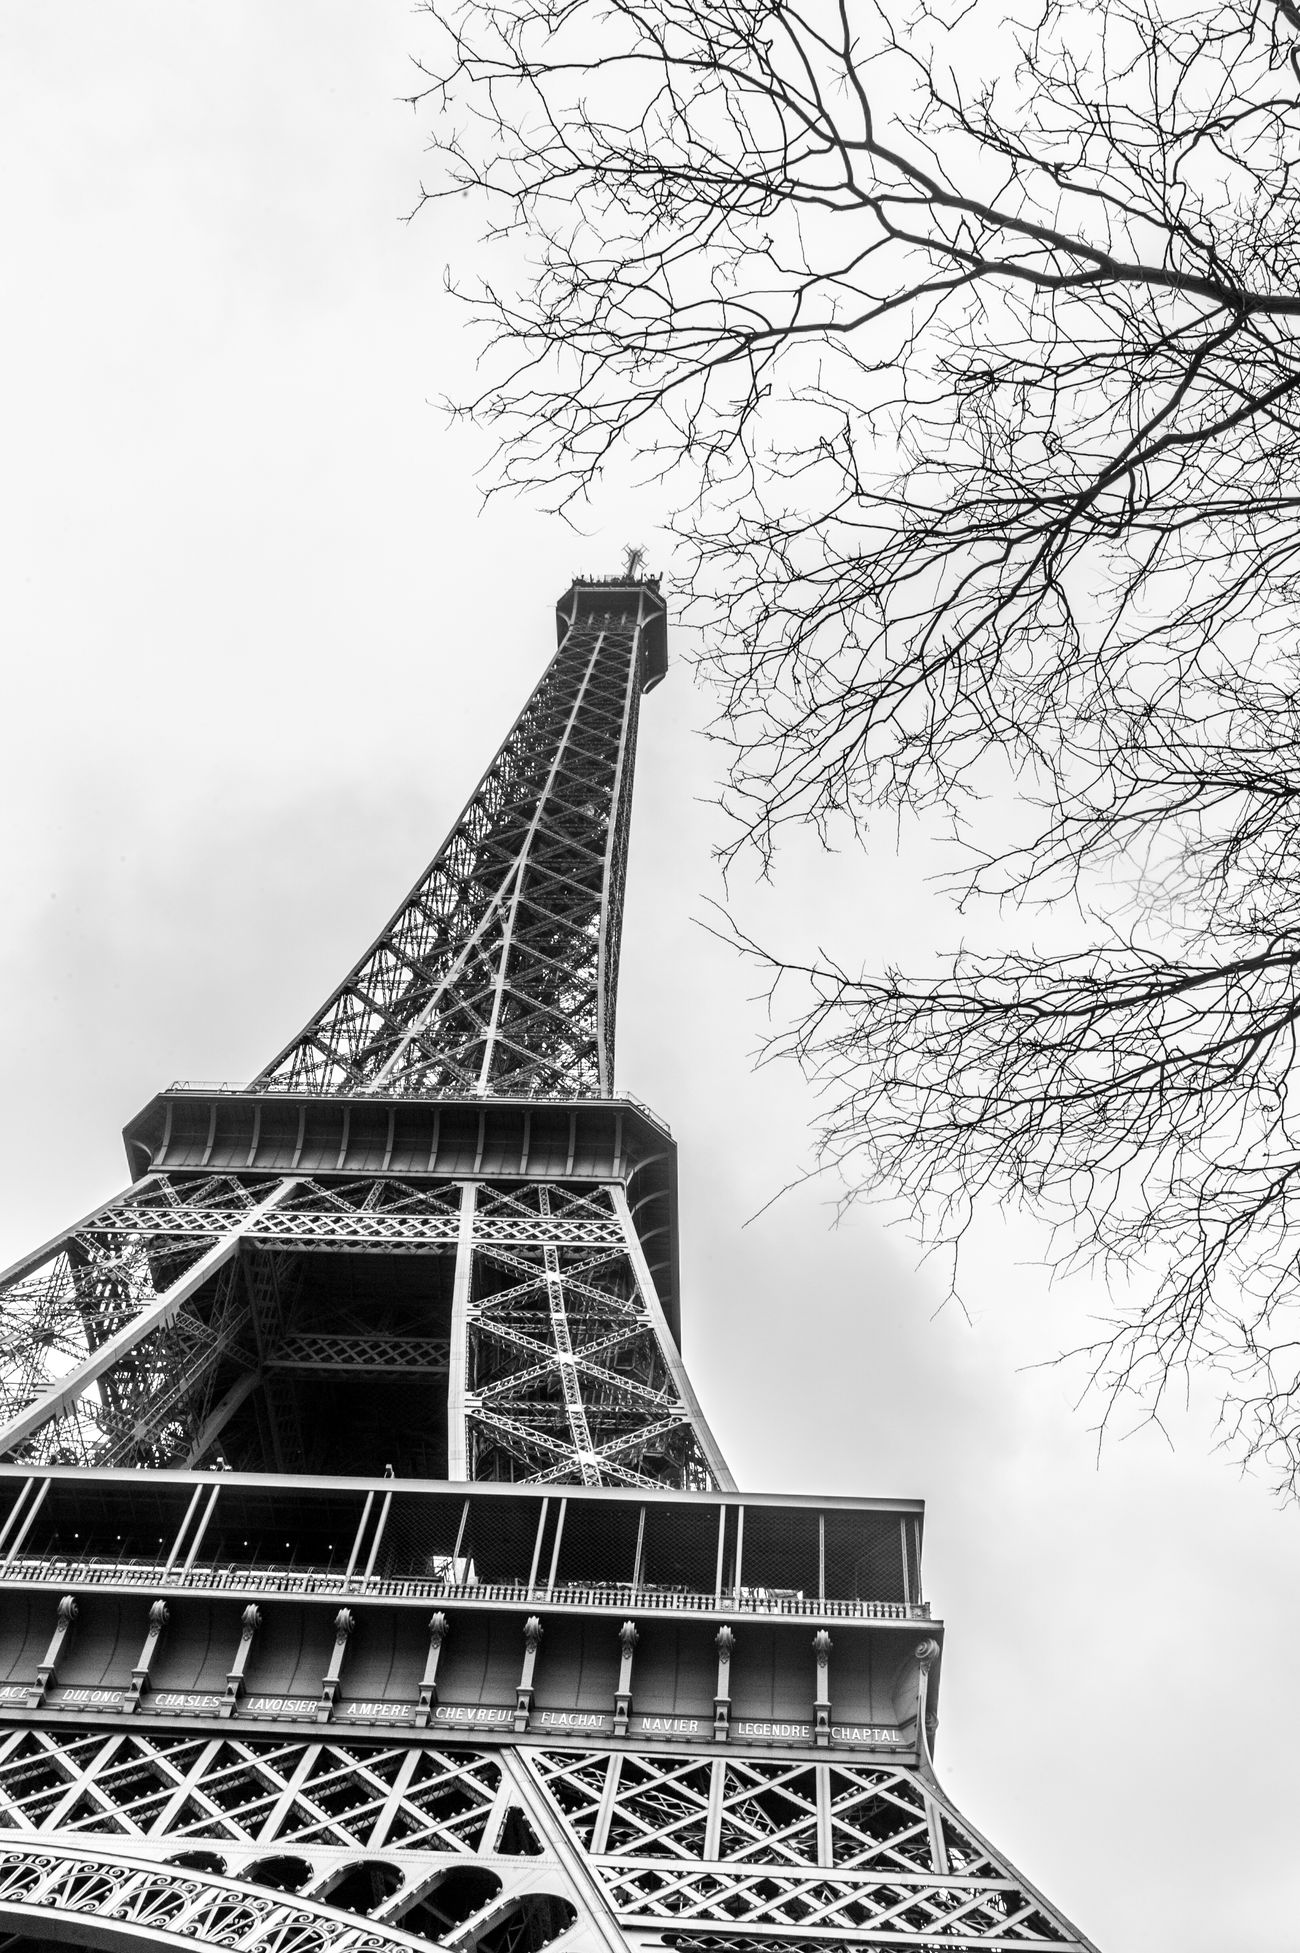 Paris 2014 LTV First Eyeem Photo Travel Photography Blackandwhite Paris ❤ Eiffel Tower Europapark